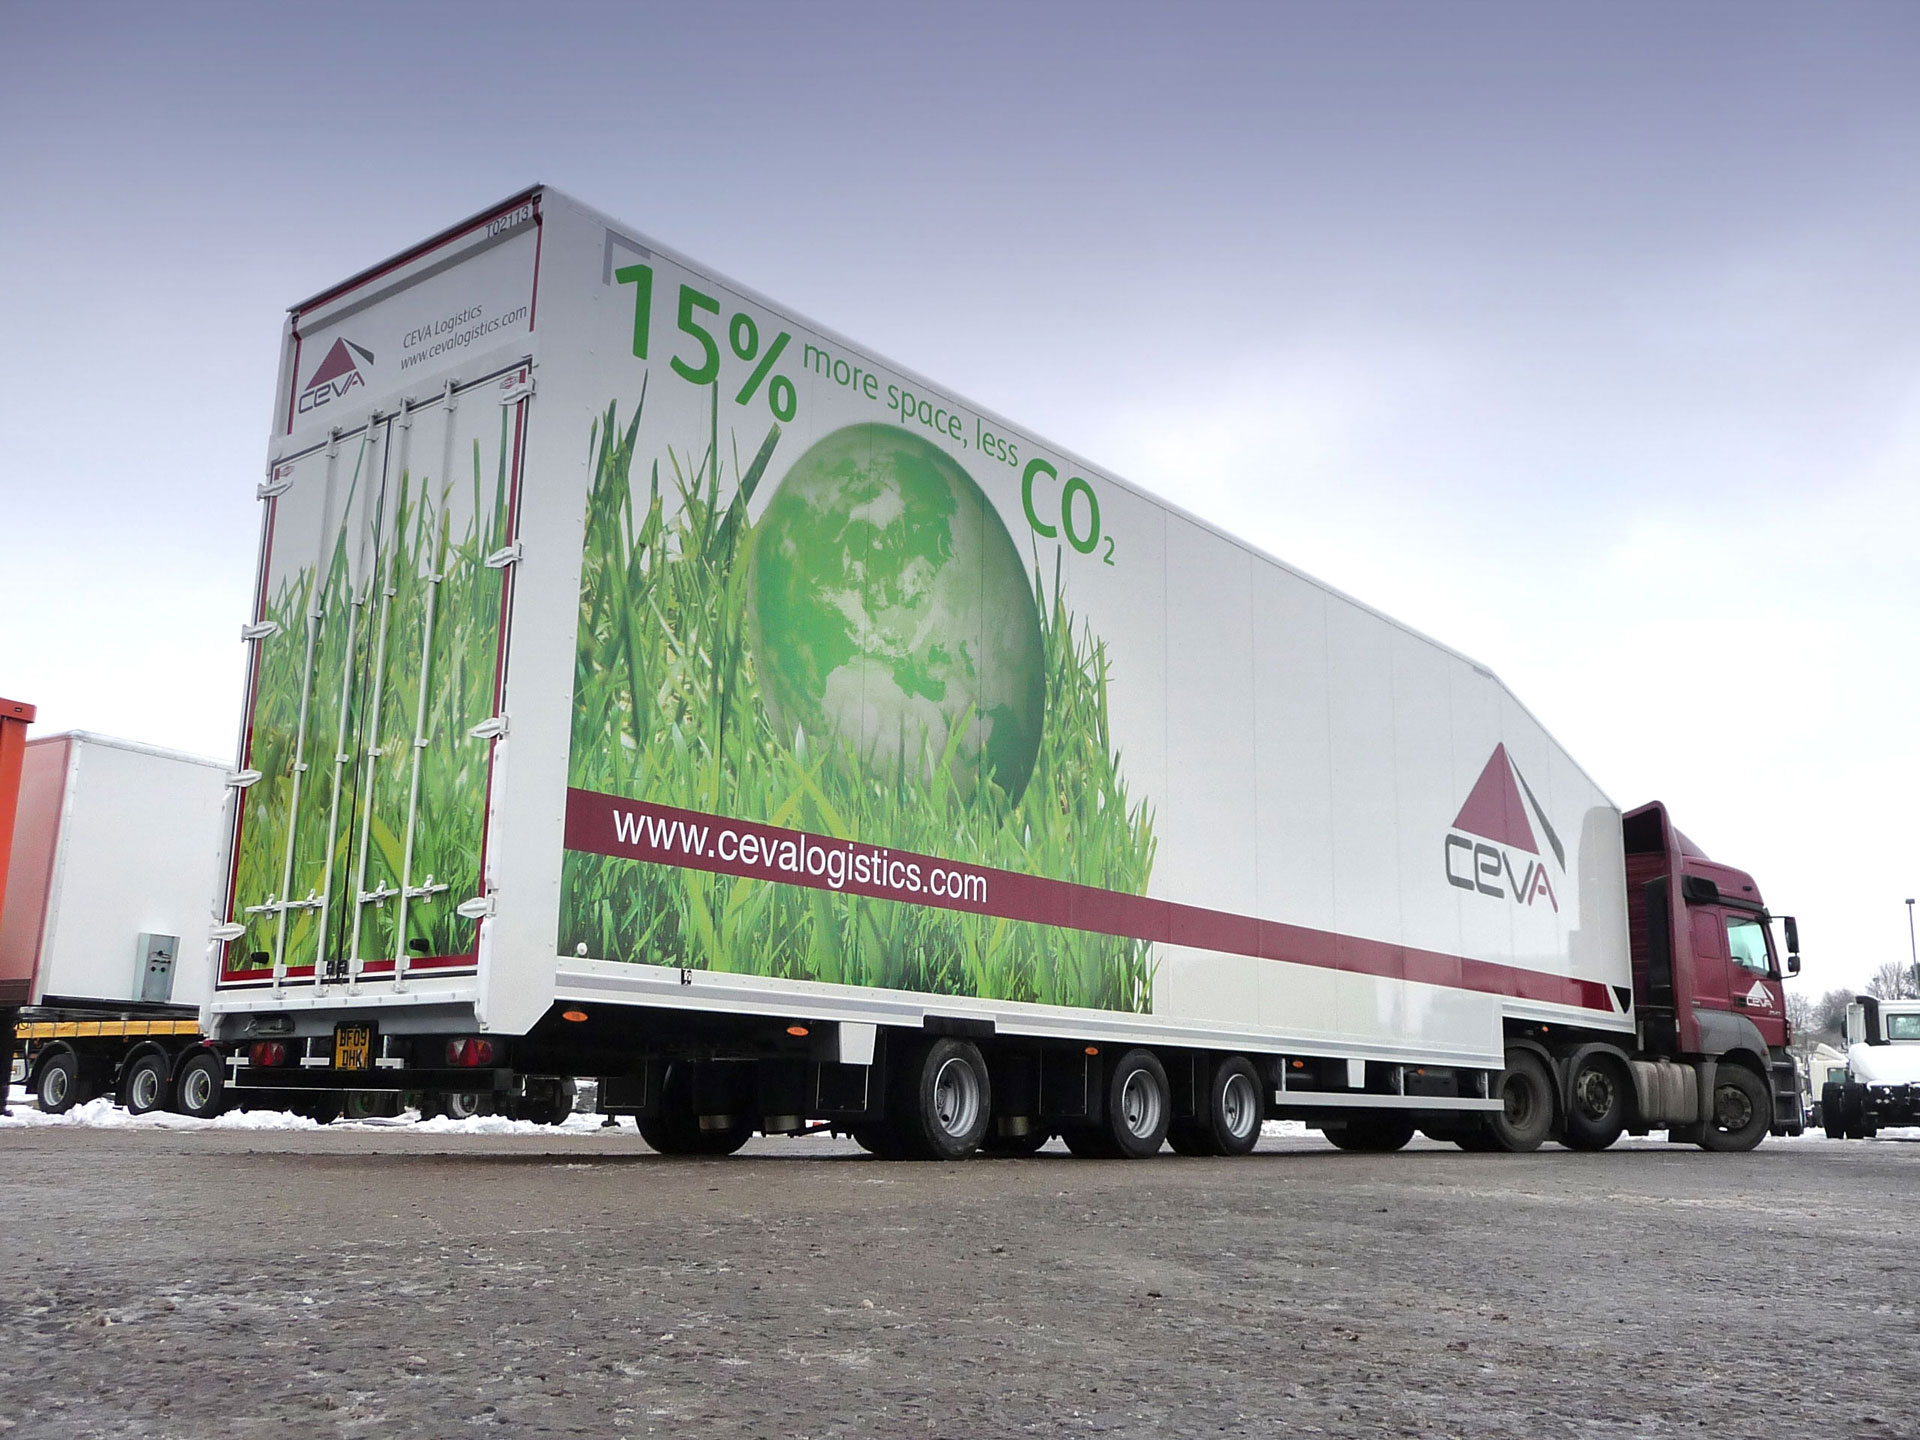 Extension confirmed for Longer Semi-Trailer Trial